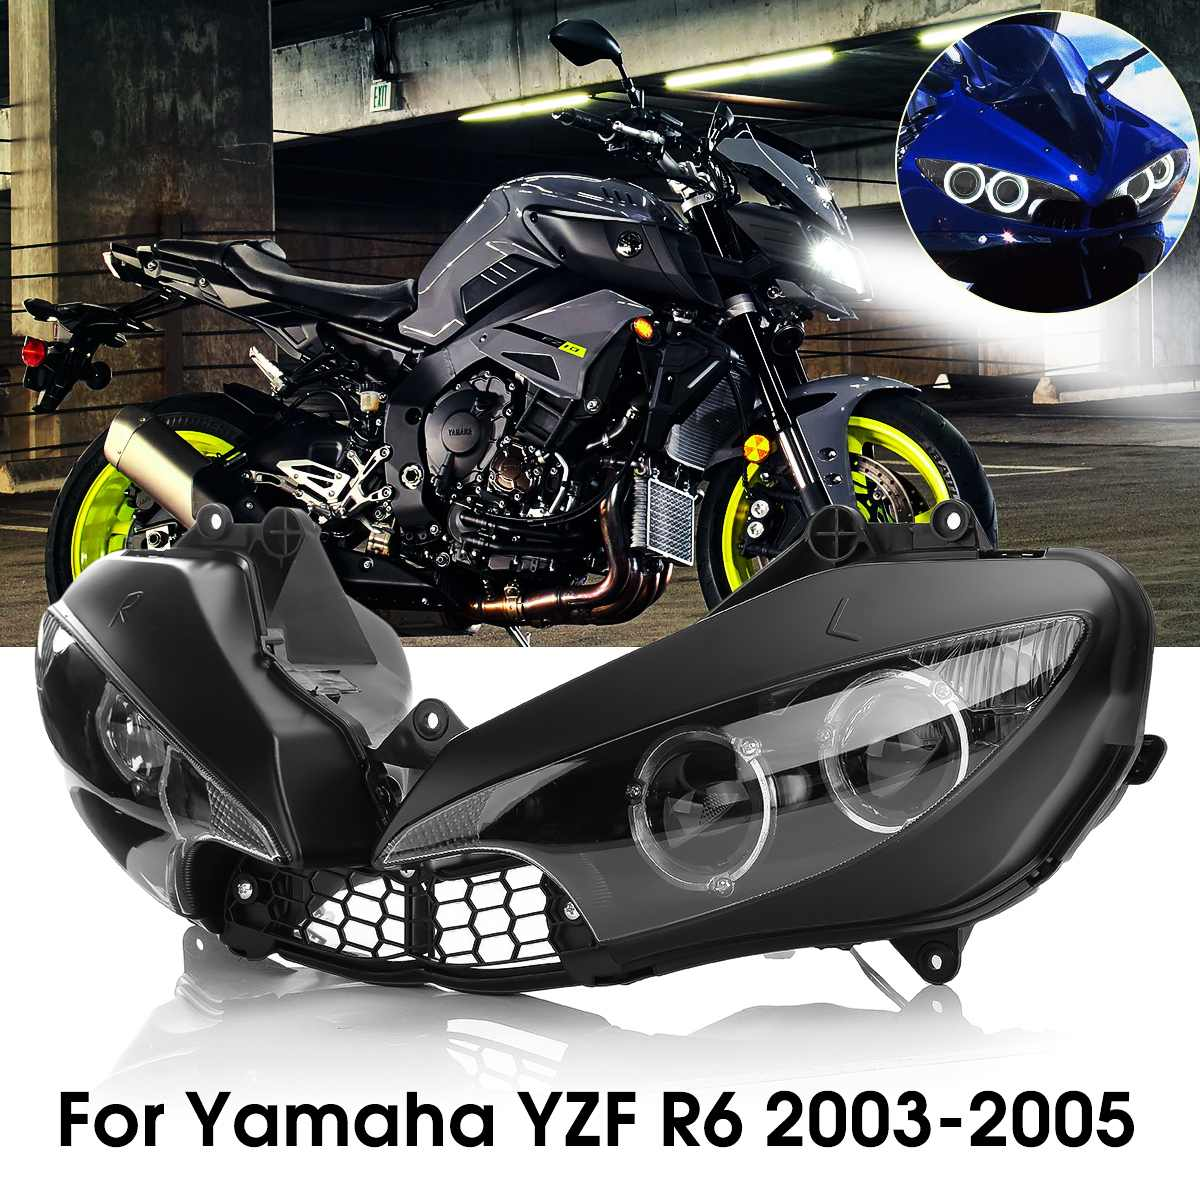 For 2003-2005 For Yamaha Yzfr6 Yzf R6 Yzf-R6 Motorcycle Front Headlight Head Light Lamp Headlamp Clear 2003 2004 2005 Styling